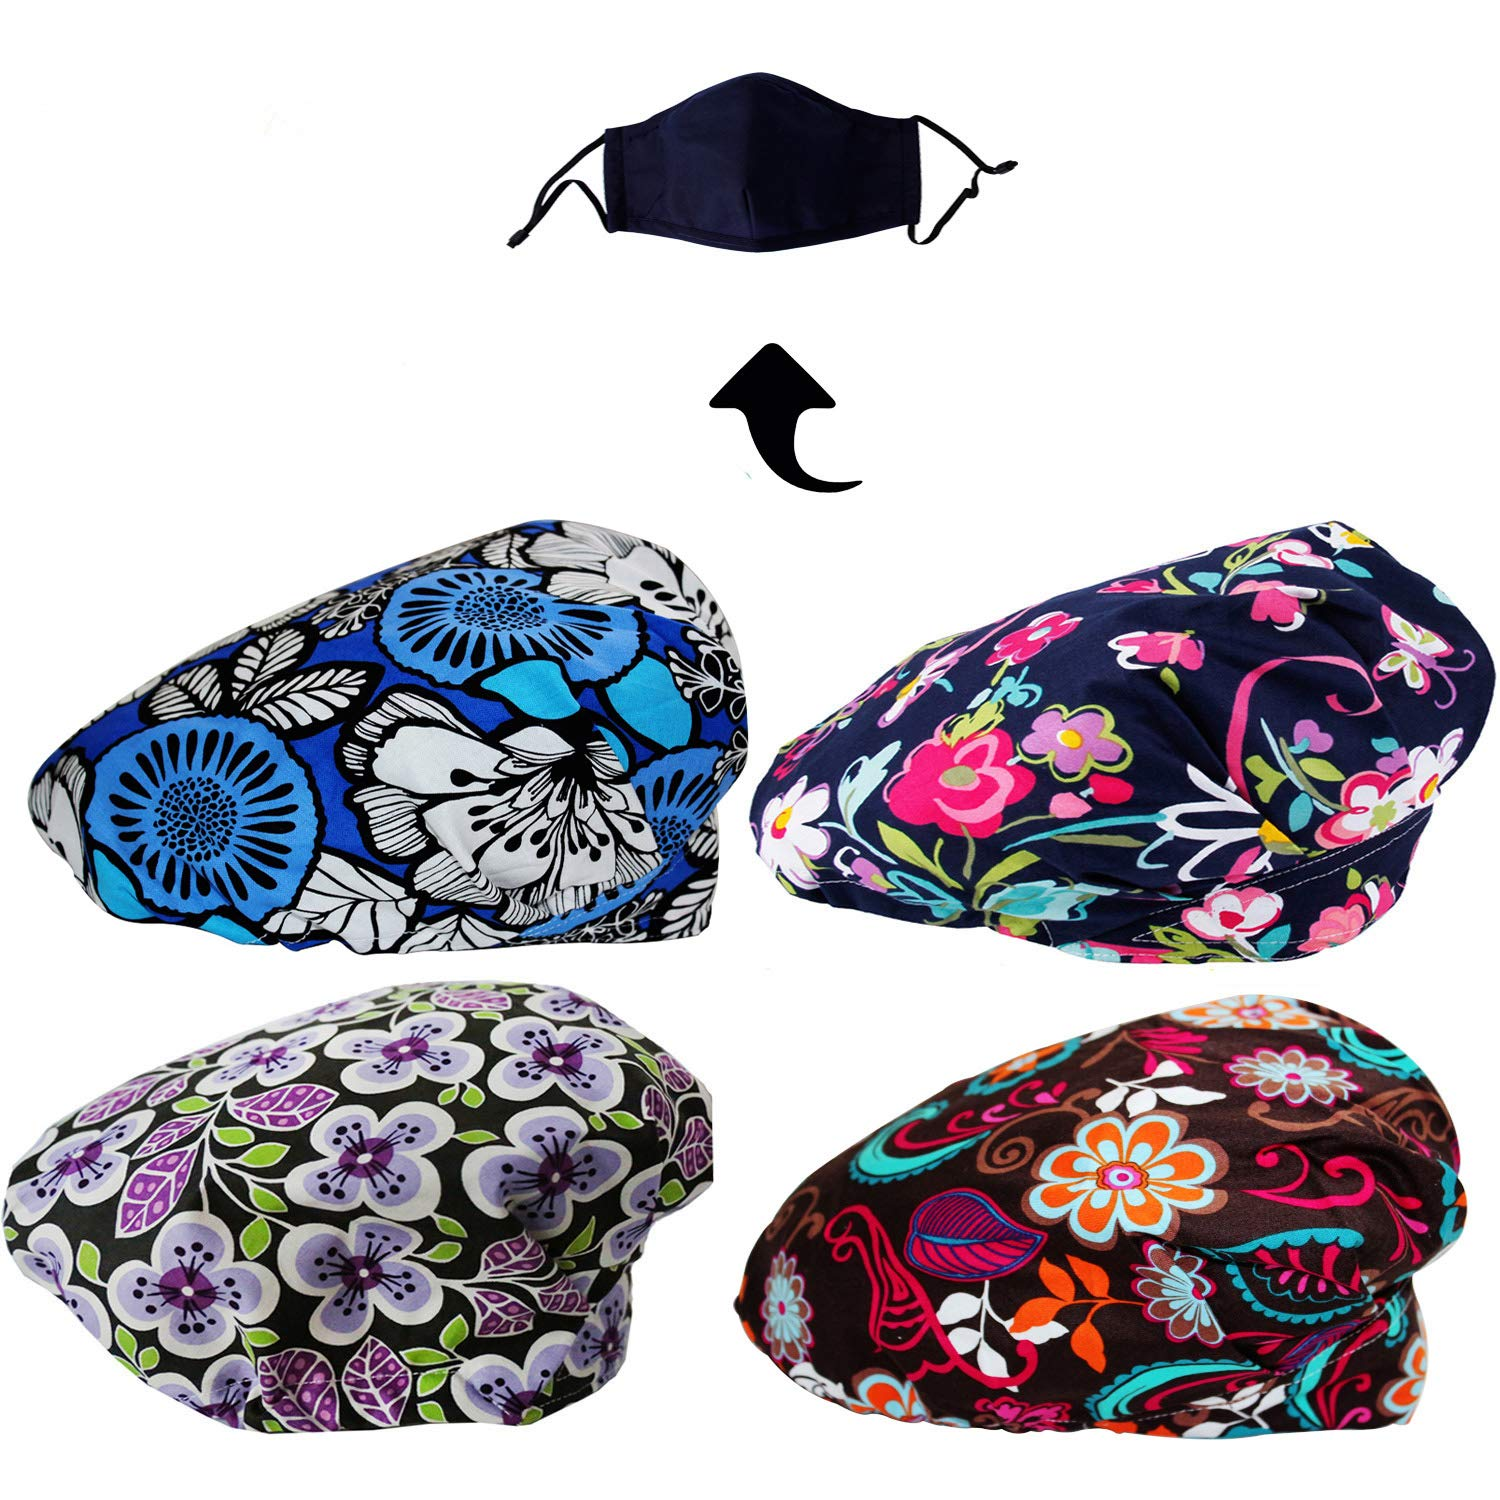 JoyRing 4 Pack Adjustable Surgical Scrub Cap Medical Doctor Bouffant Hats with Sweatband and Free Cotton Mask by JoyRing